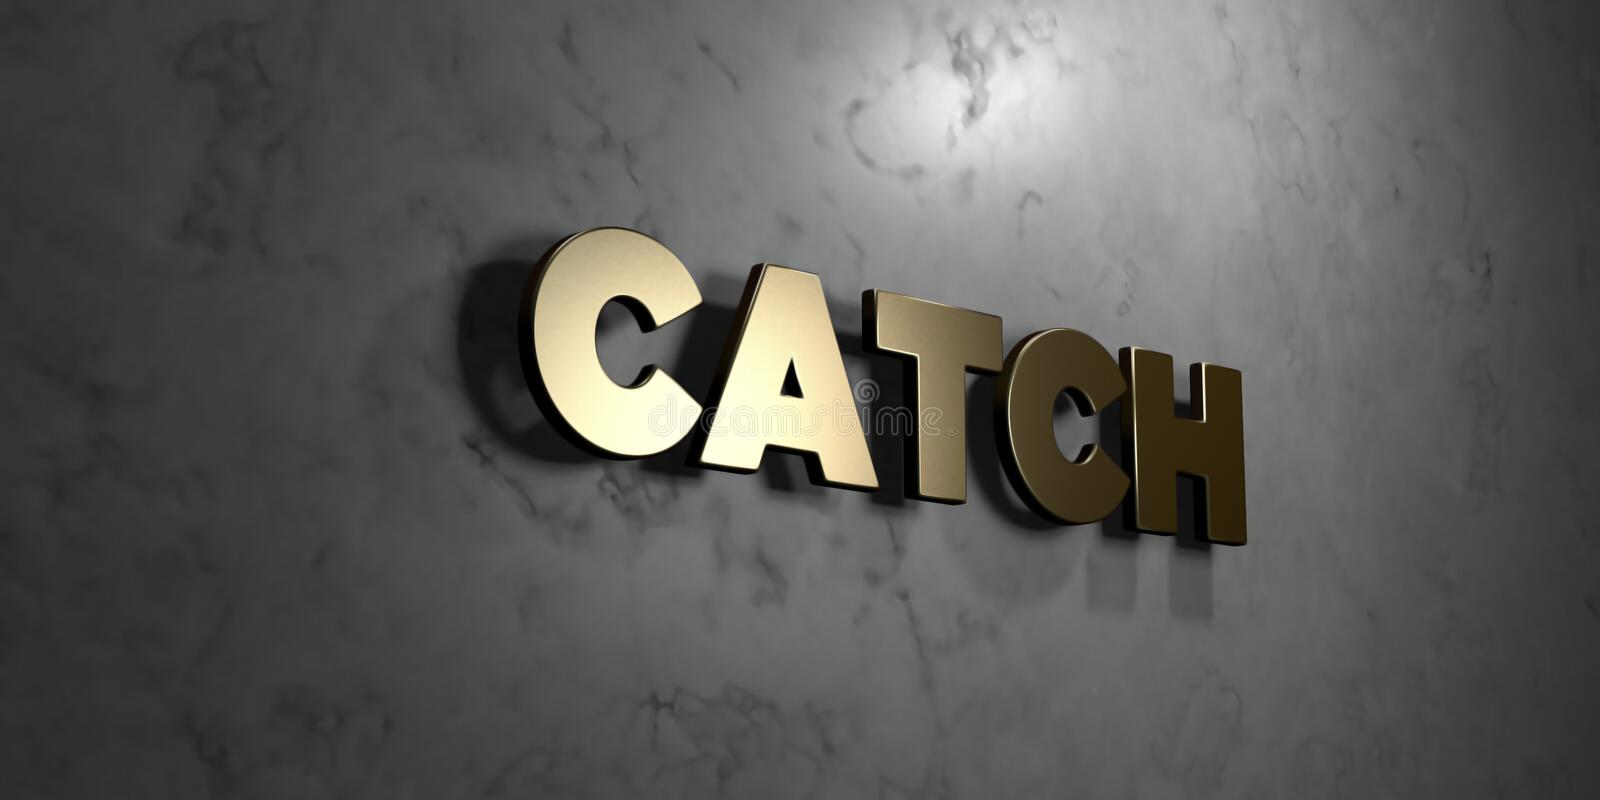 Catch - Gold sign mounted on glossy marble wall - 3D rendered royalty free stock illustration royalty free illustration